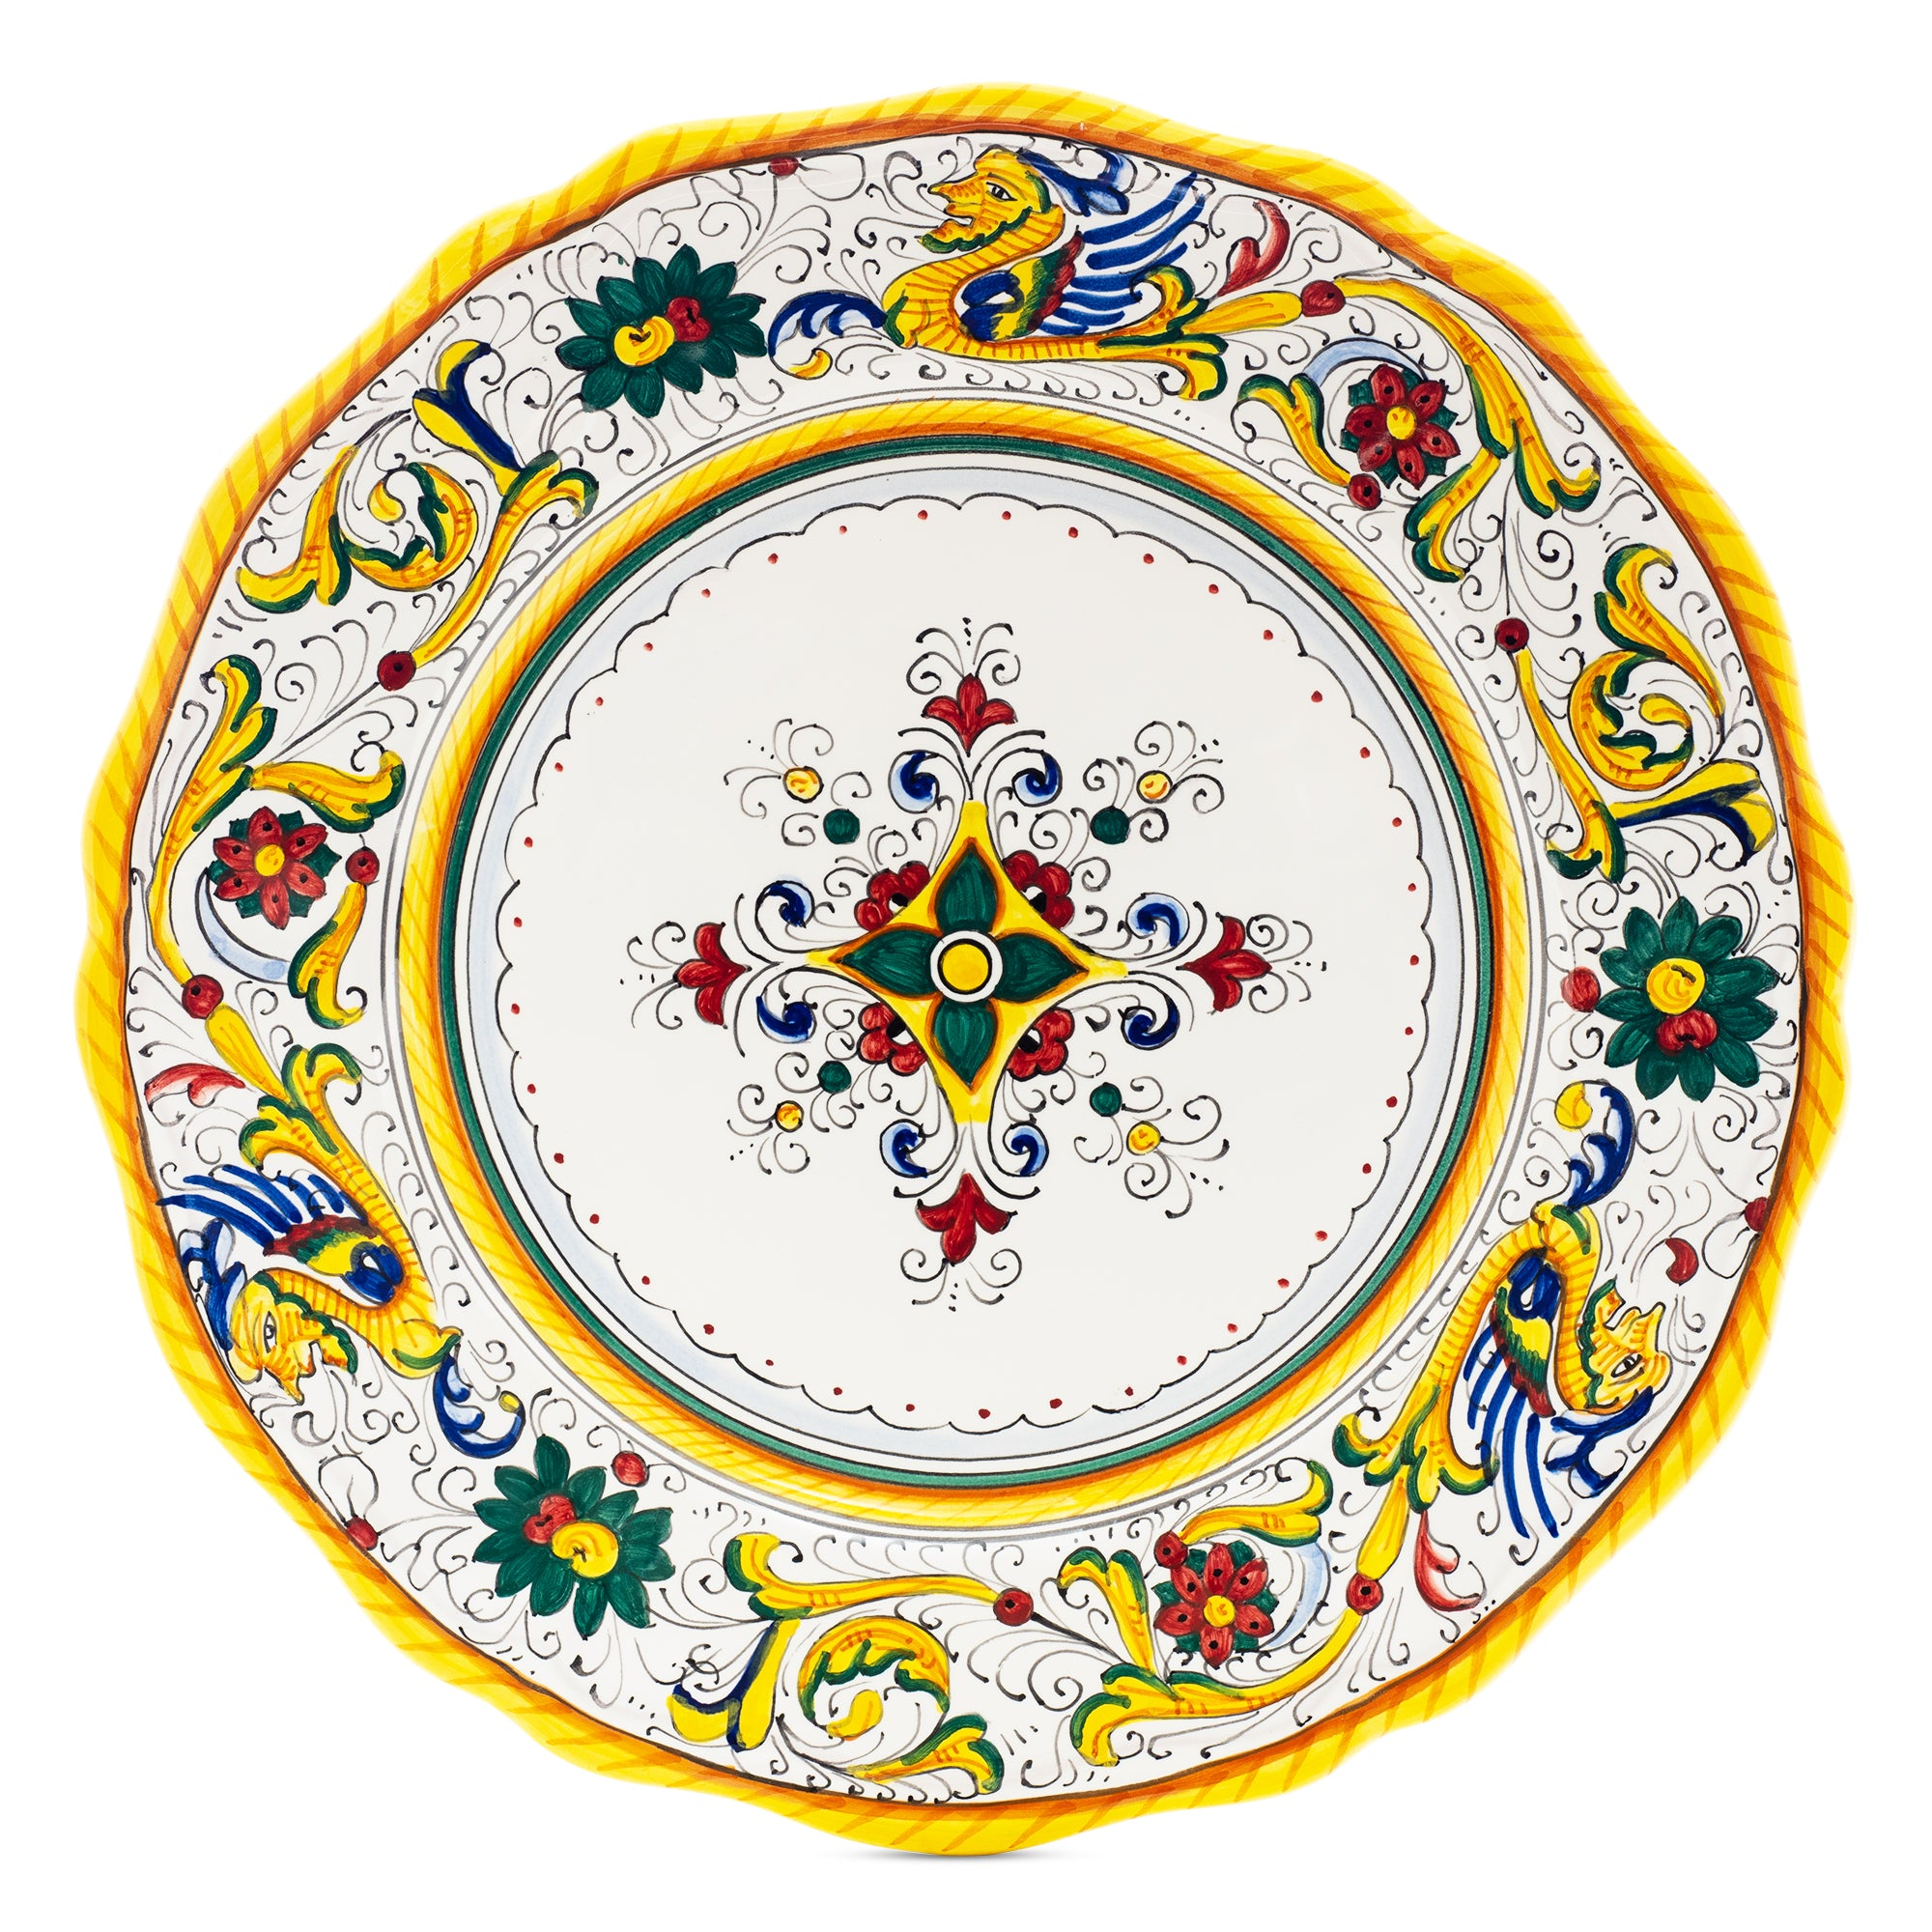 Raffaellesco Dinner Plate, Full Design Italian Ceramics from Deruta, Majolica Pottery